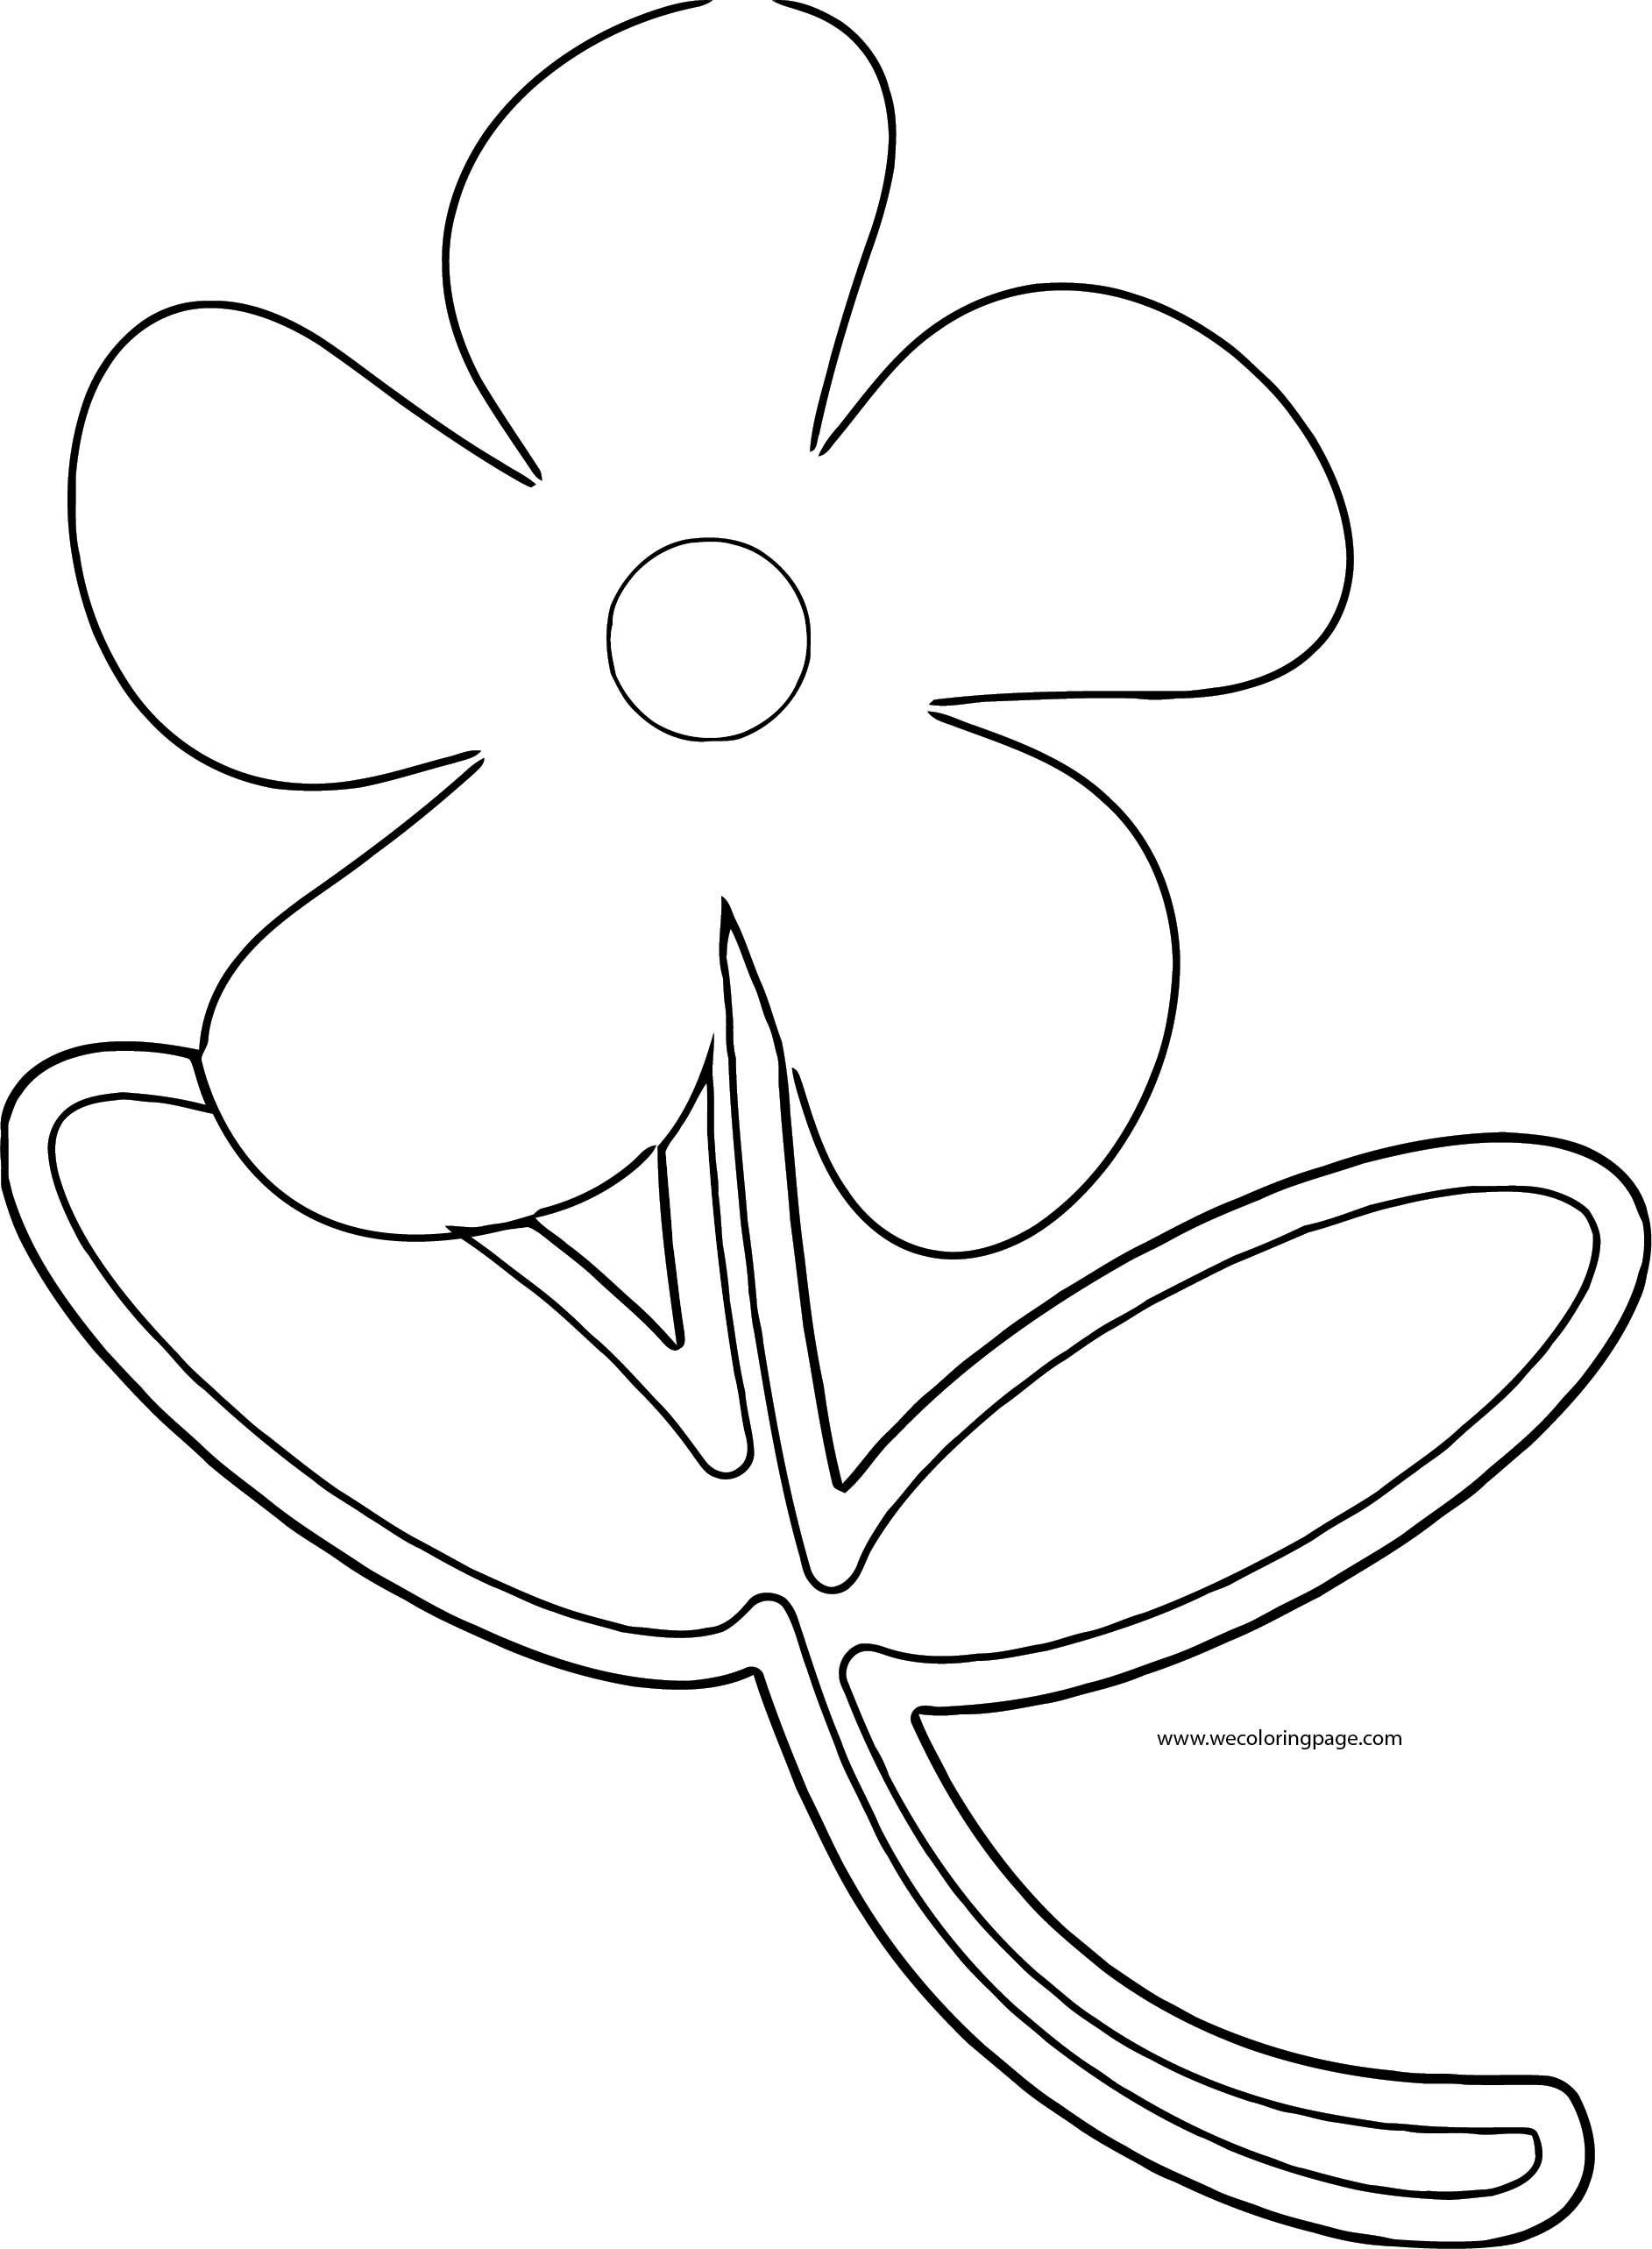 Flower Coloring Page Wecoloringpage 006